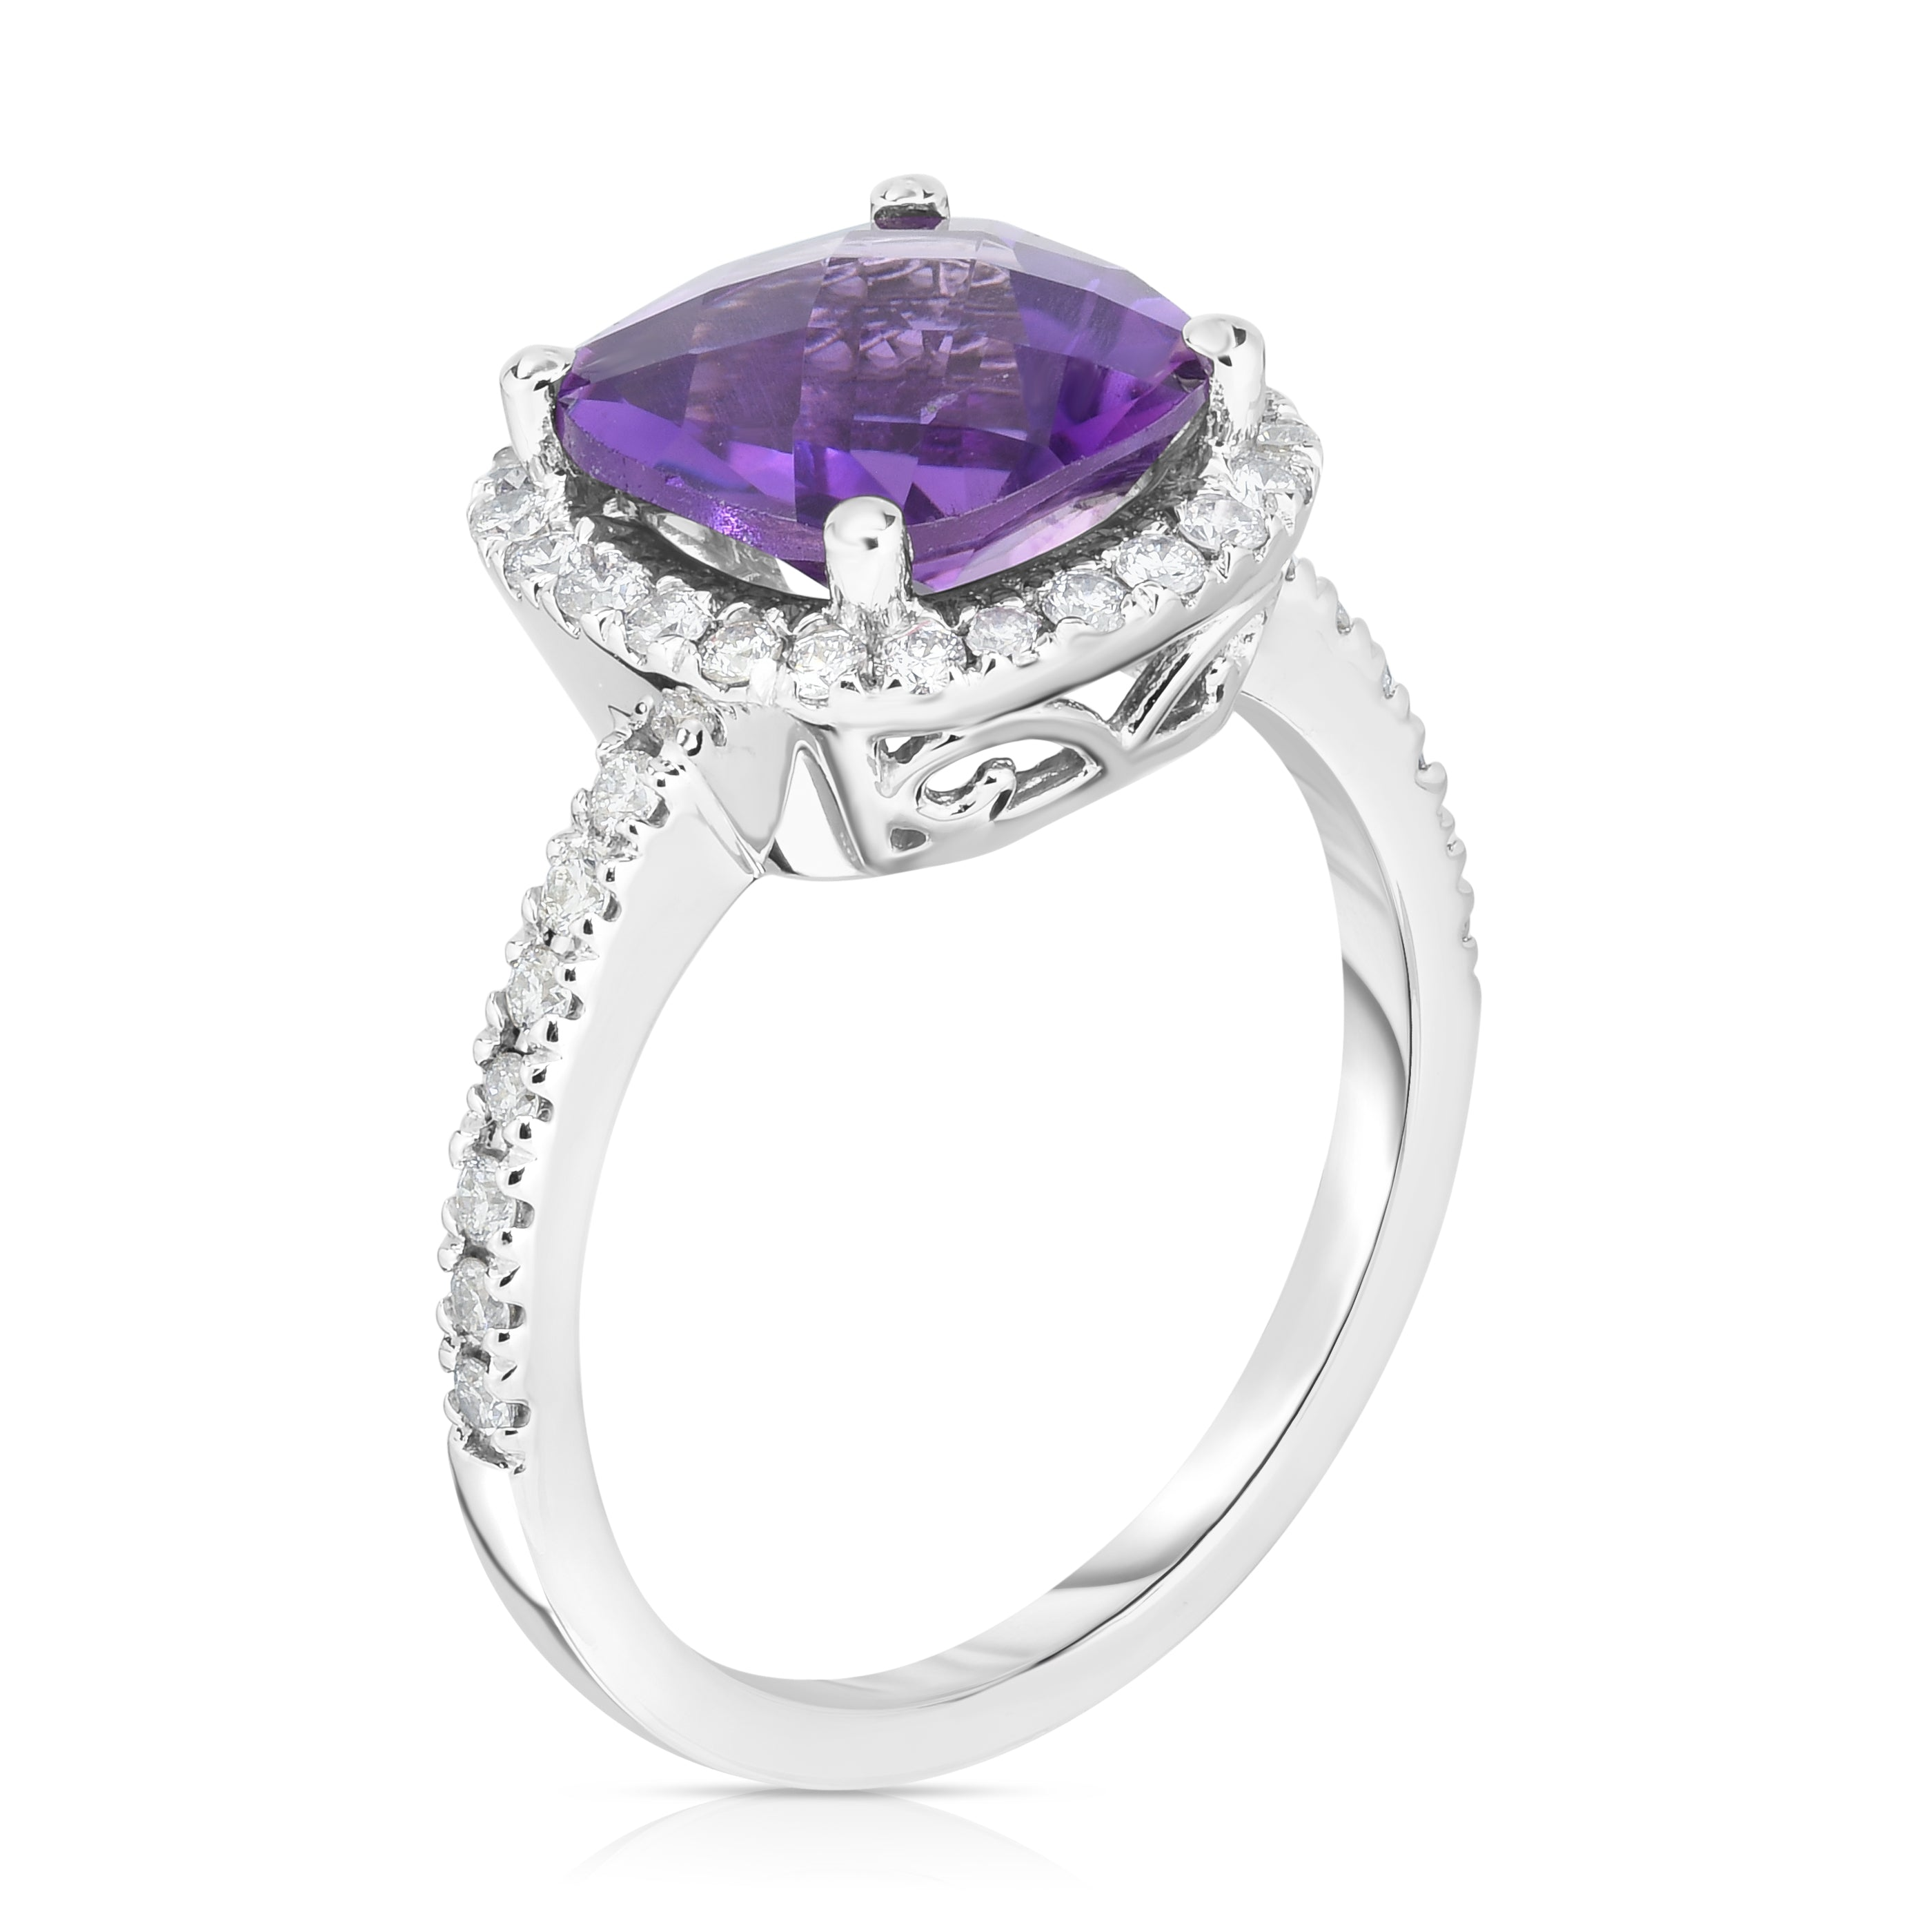 rings even and image so amethyst topic there for gorgeous out but t is e ring engagement glad it m picture vibrant can gladly amethist show asked off my doesn i this any whenever an ll how